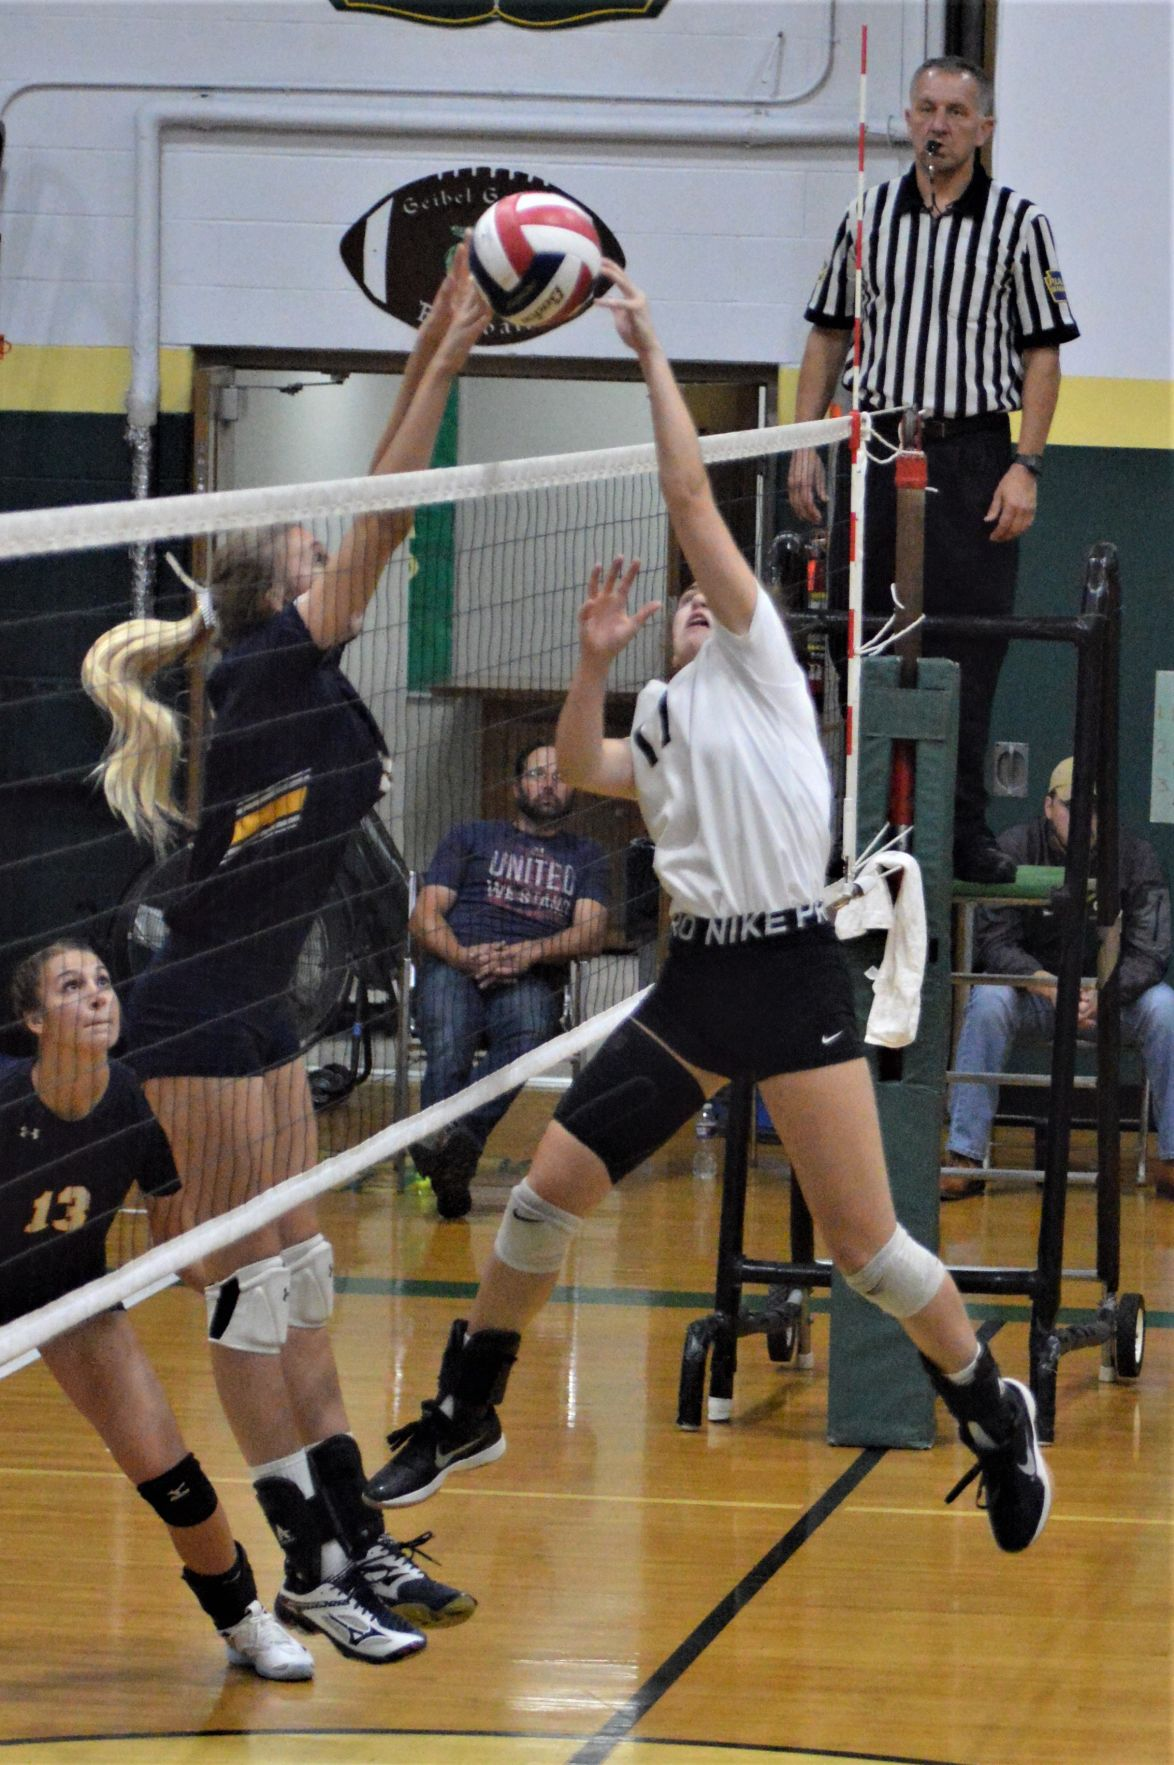 Battle at the net